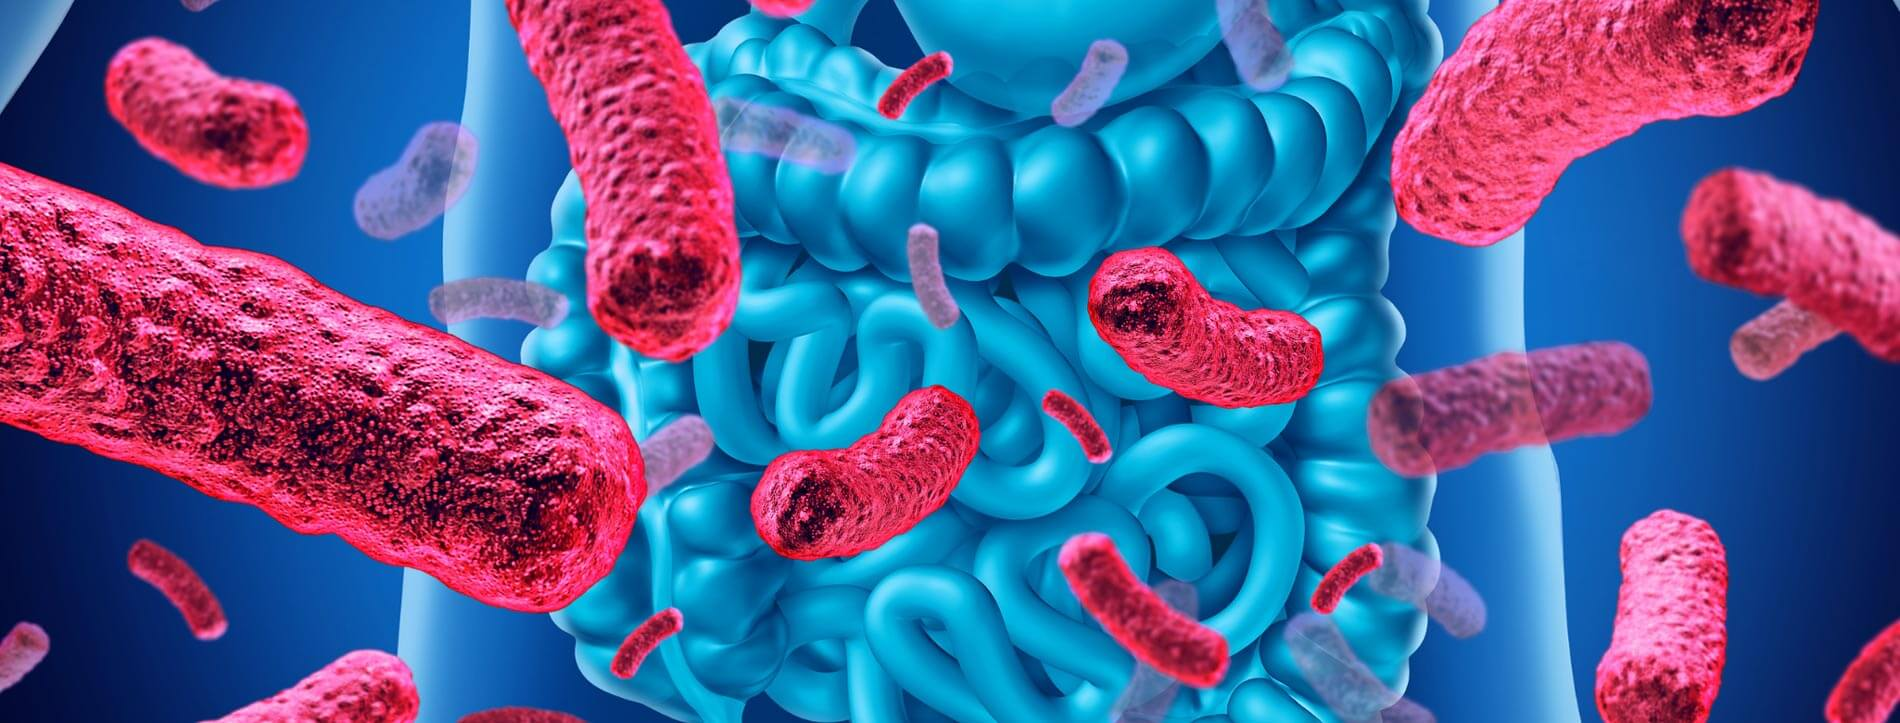 How Toxicity Affects Gut Microbiome